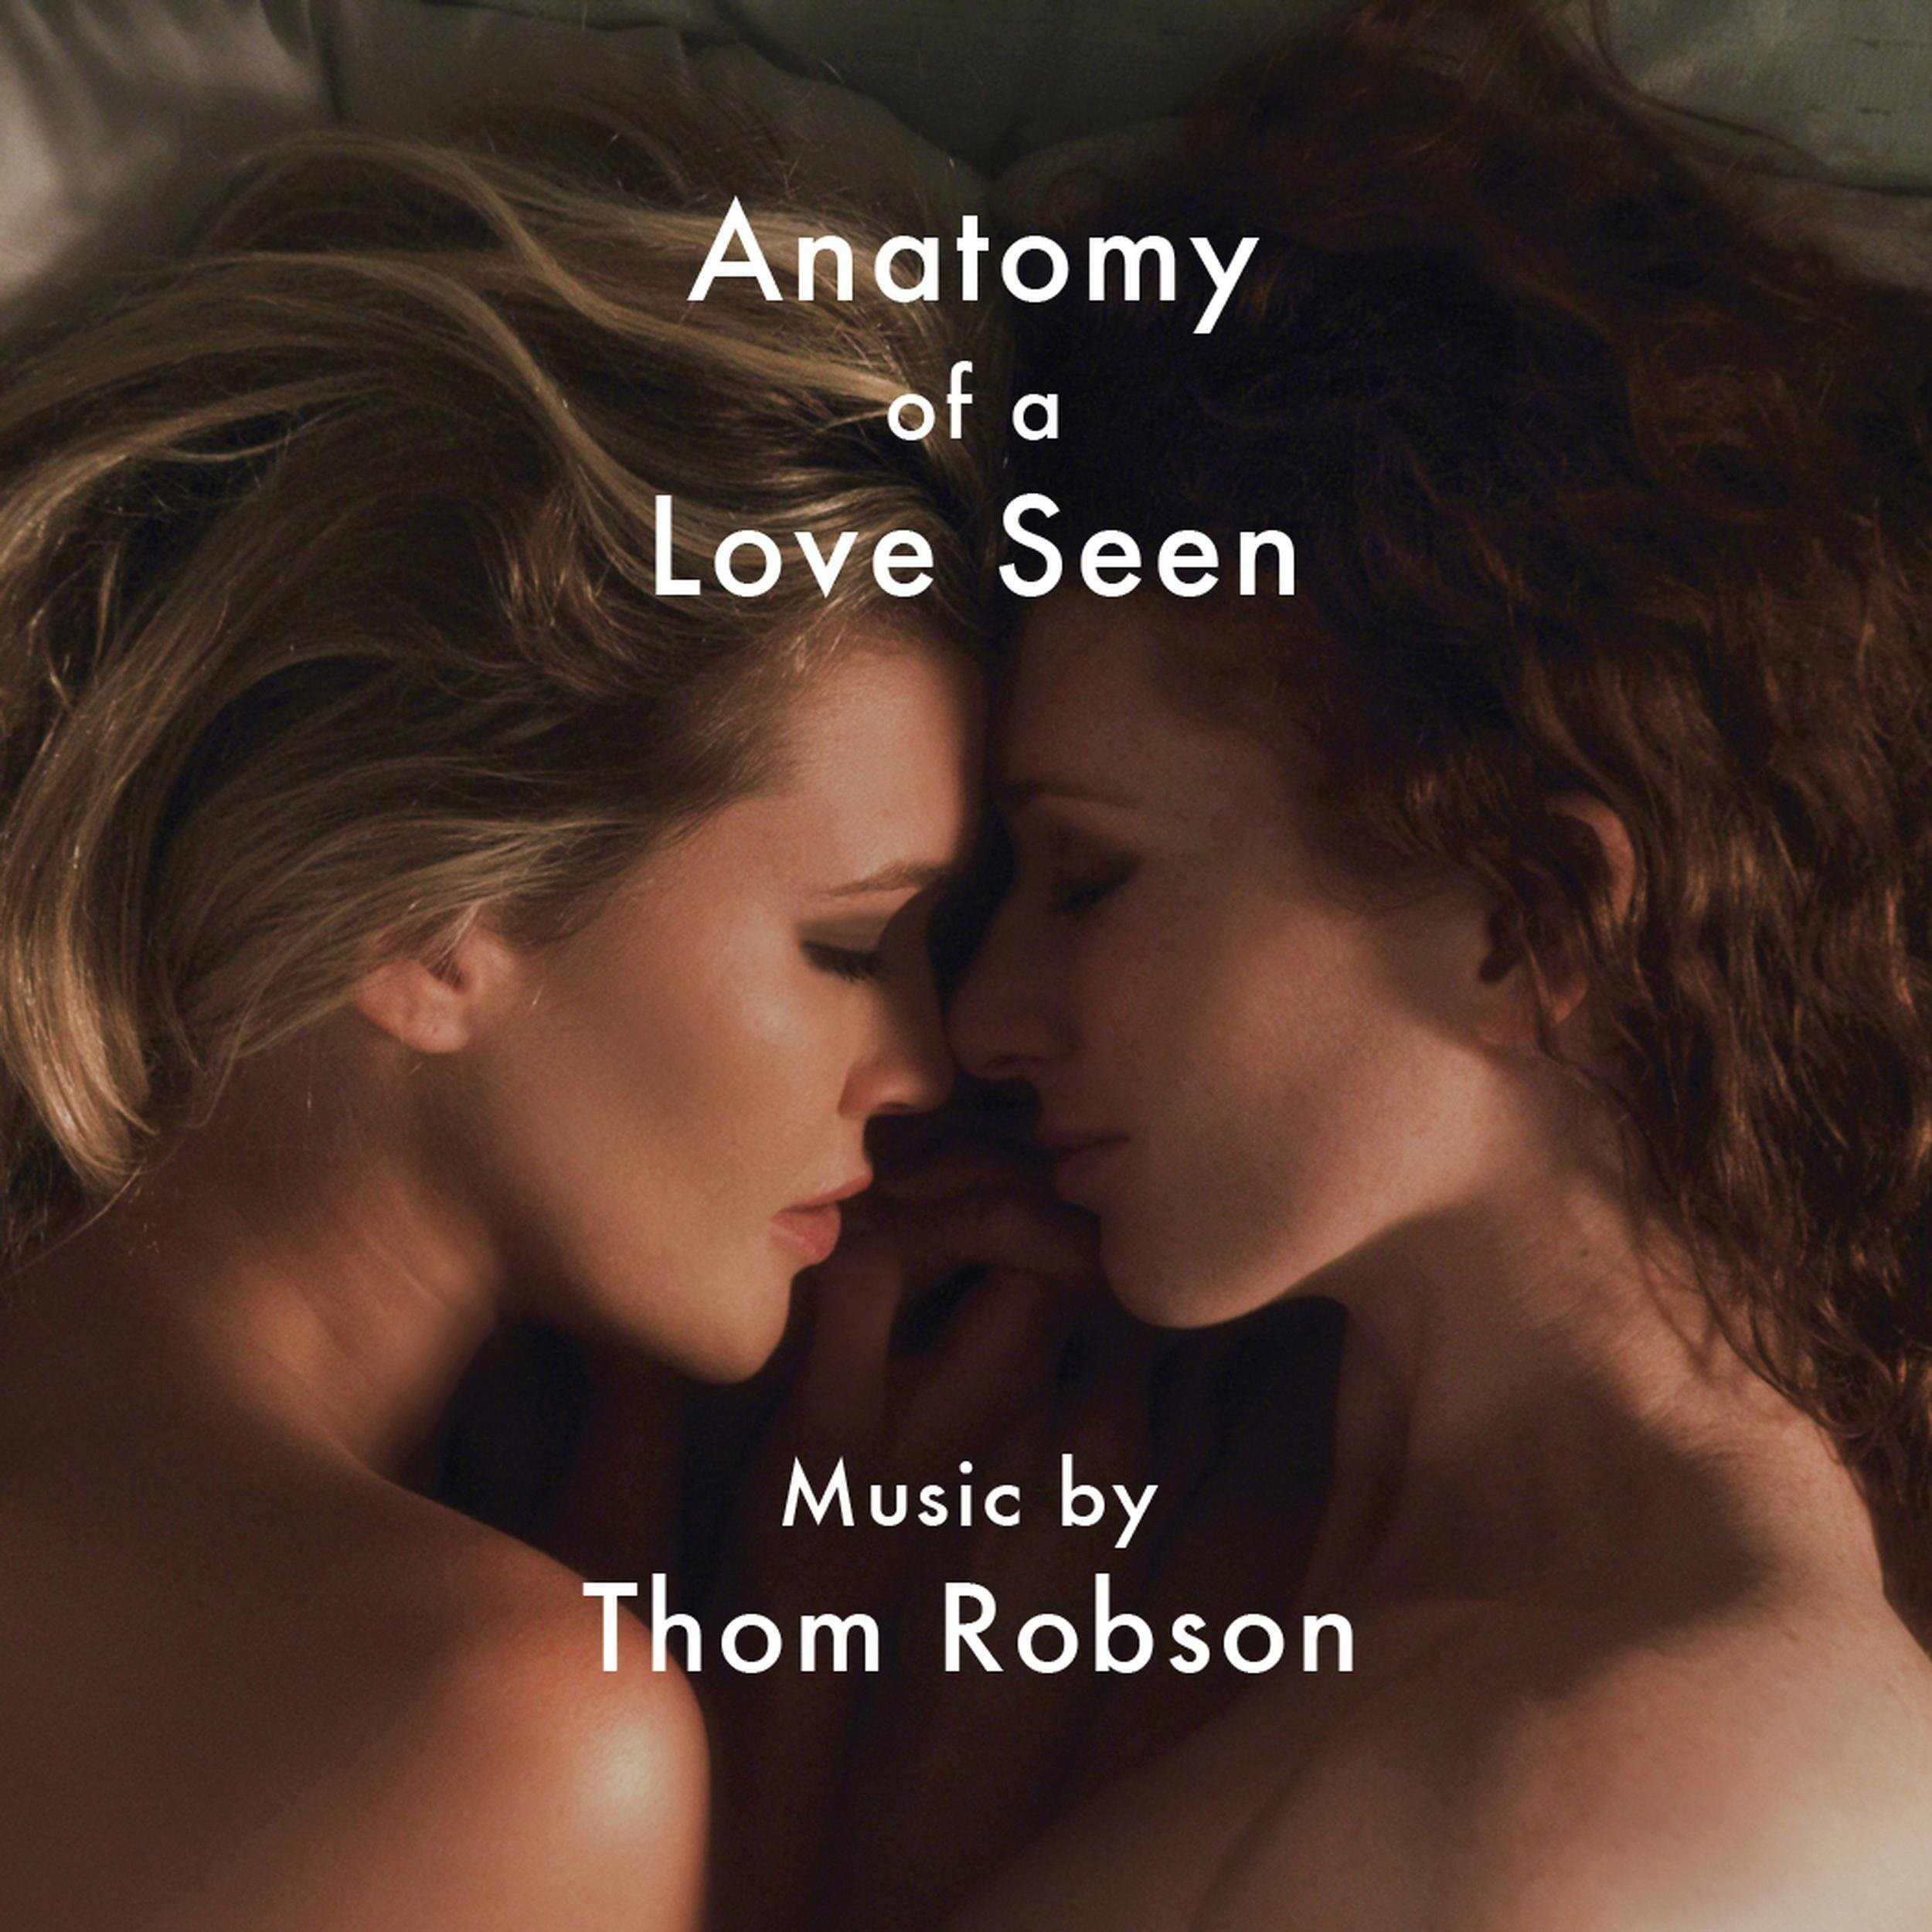 Anatomy Of A Love Seen En Español film music site - anatomy of a love seen soundtrack (thom